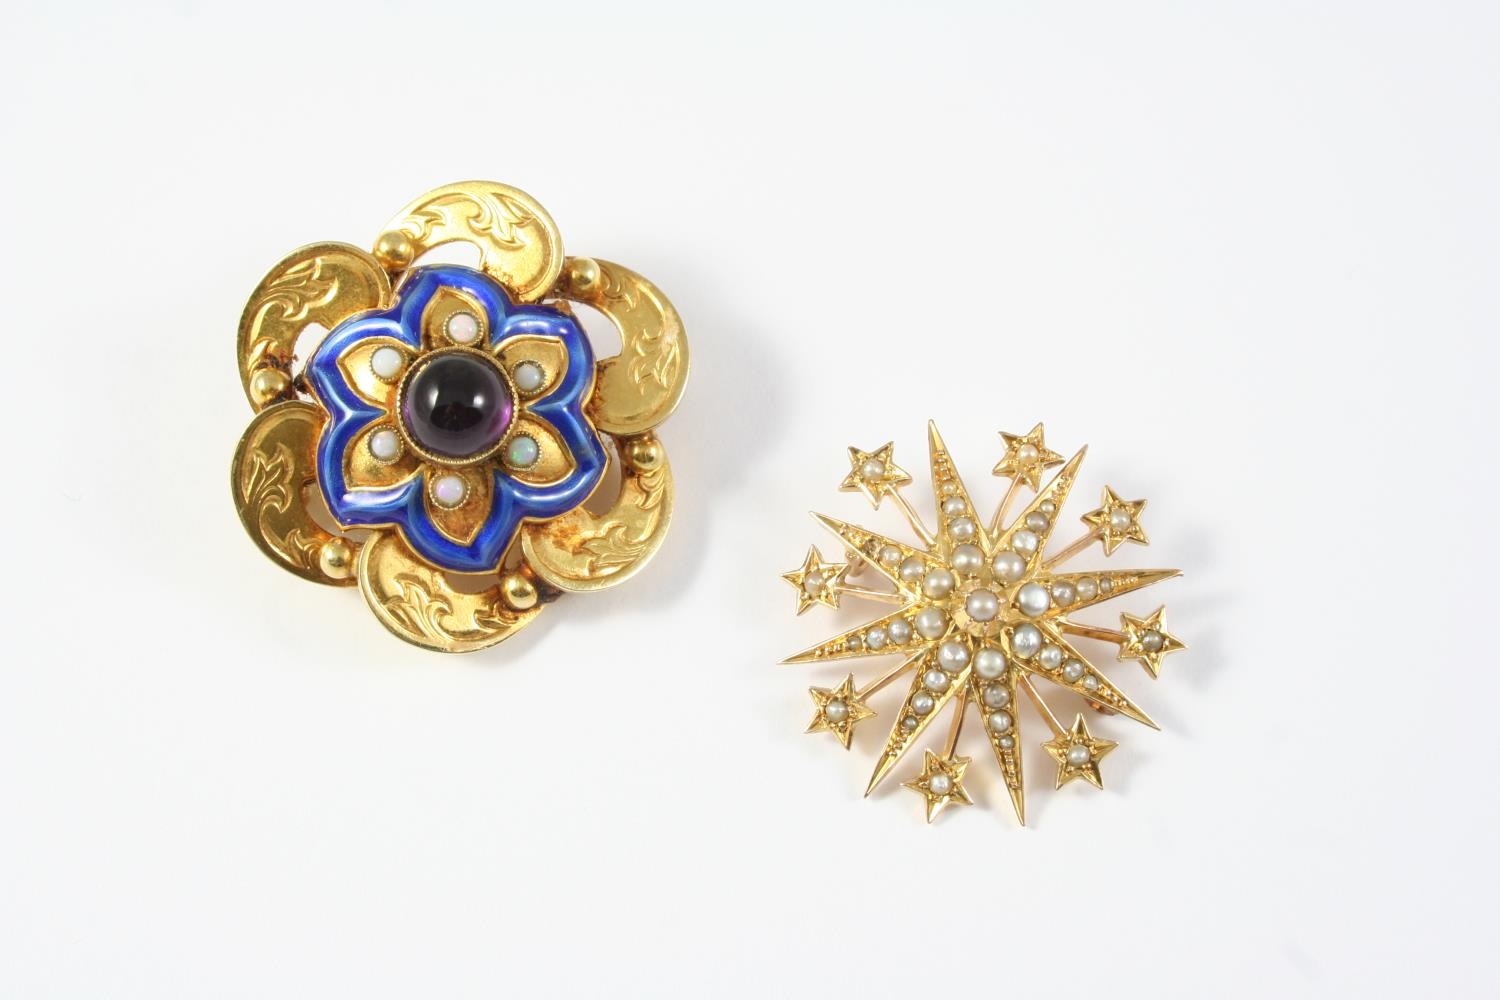 A VICTORIAN GOLD AND GEM SET BROOCH the engraved gold mount with blue enamel decoration is centred